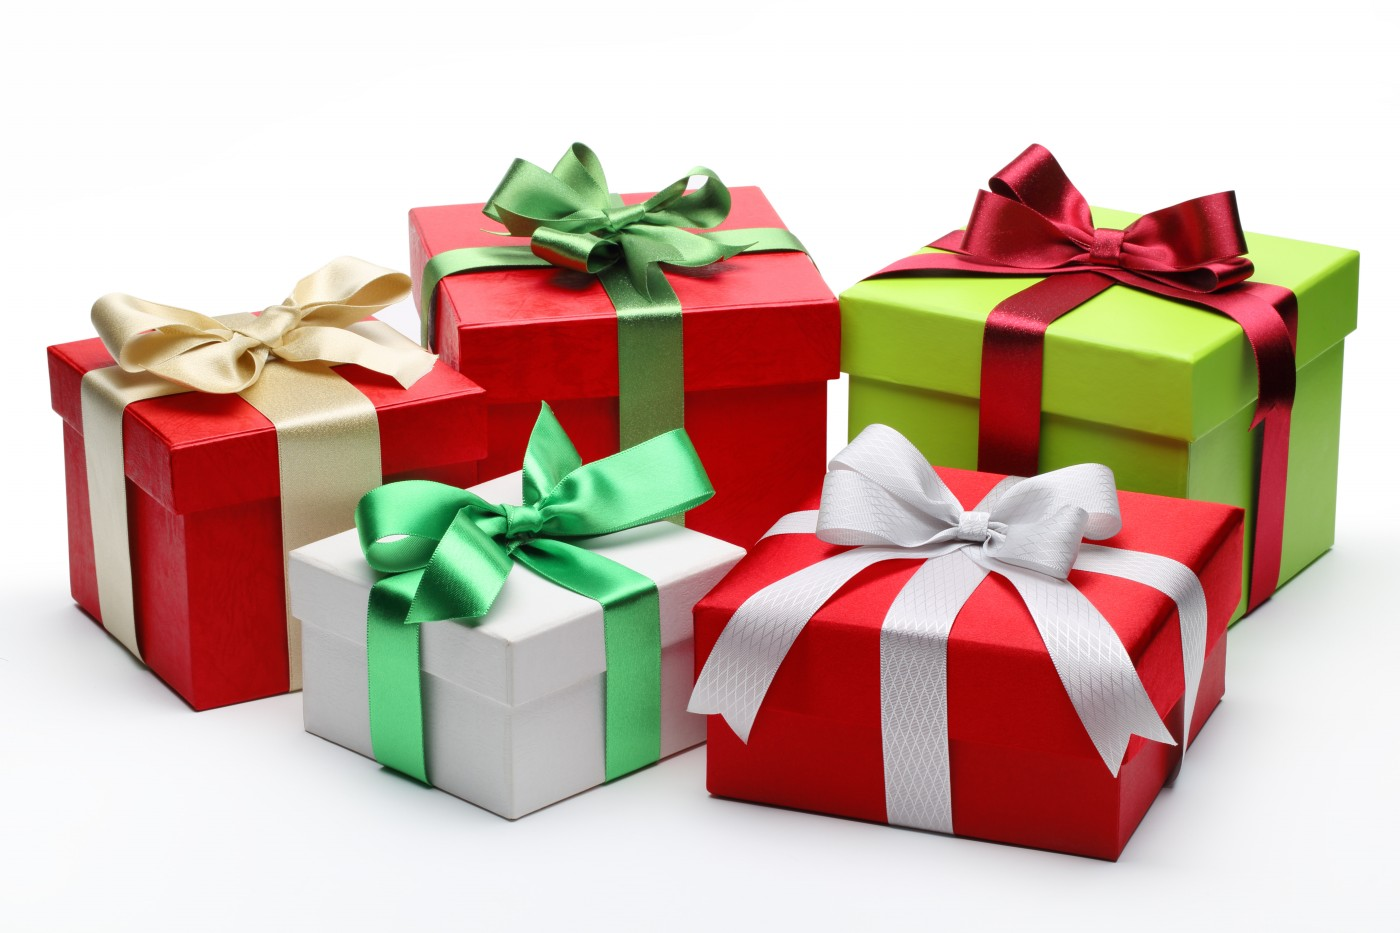 Five Colorful Gift Boxes 122.87 Kb